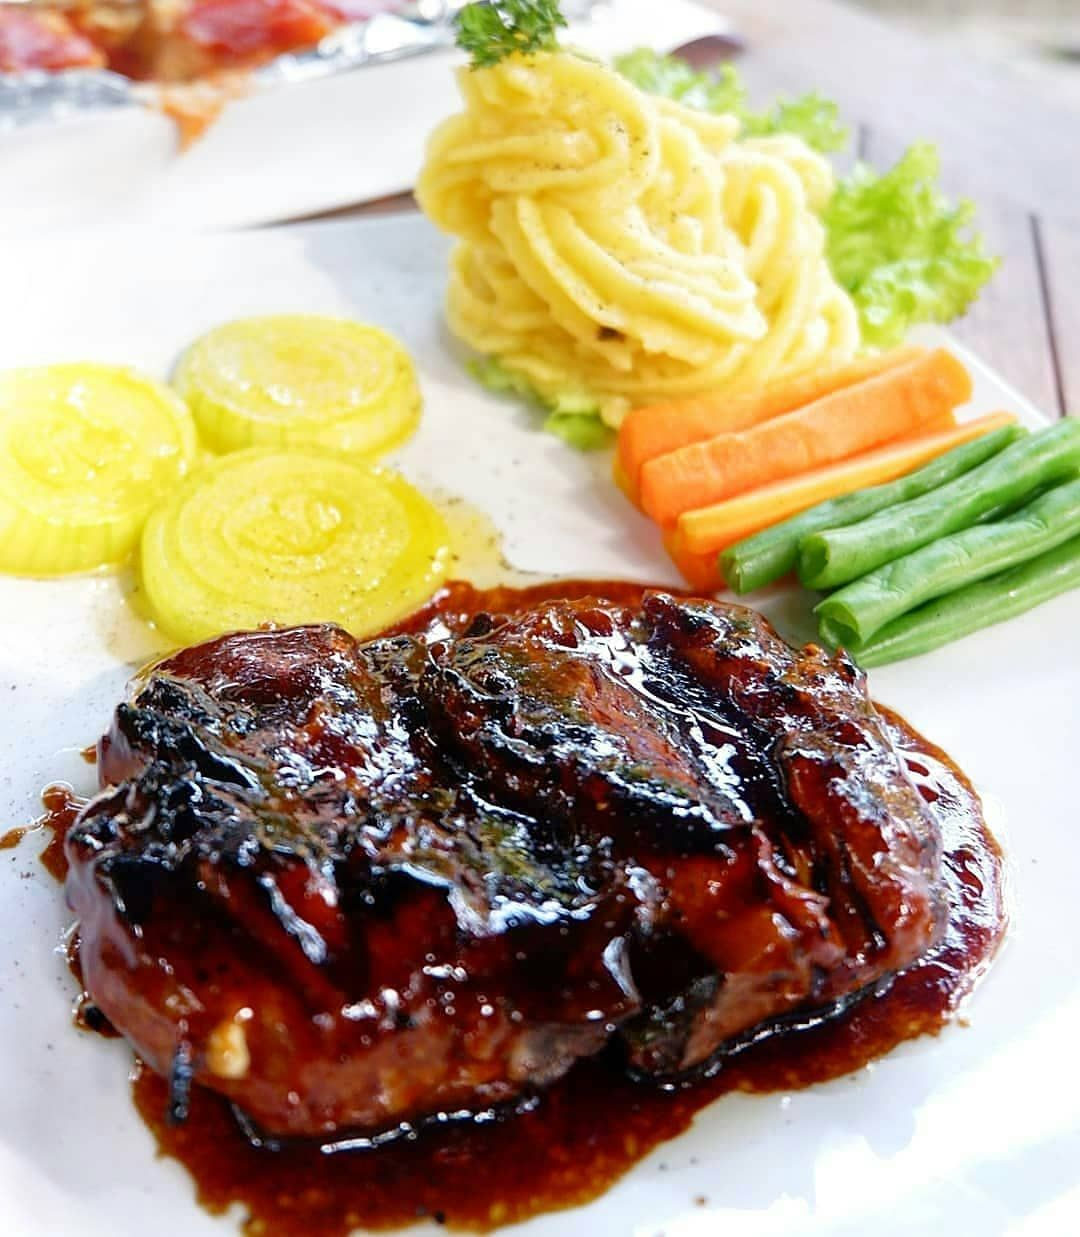 Bistik Tuna Bakaran Daging Ikan Tuna Segar Disajikan Dengan Mashed Potato Stup Sayuran Saus Bistik Food Dinner Pork